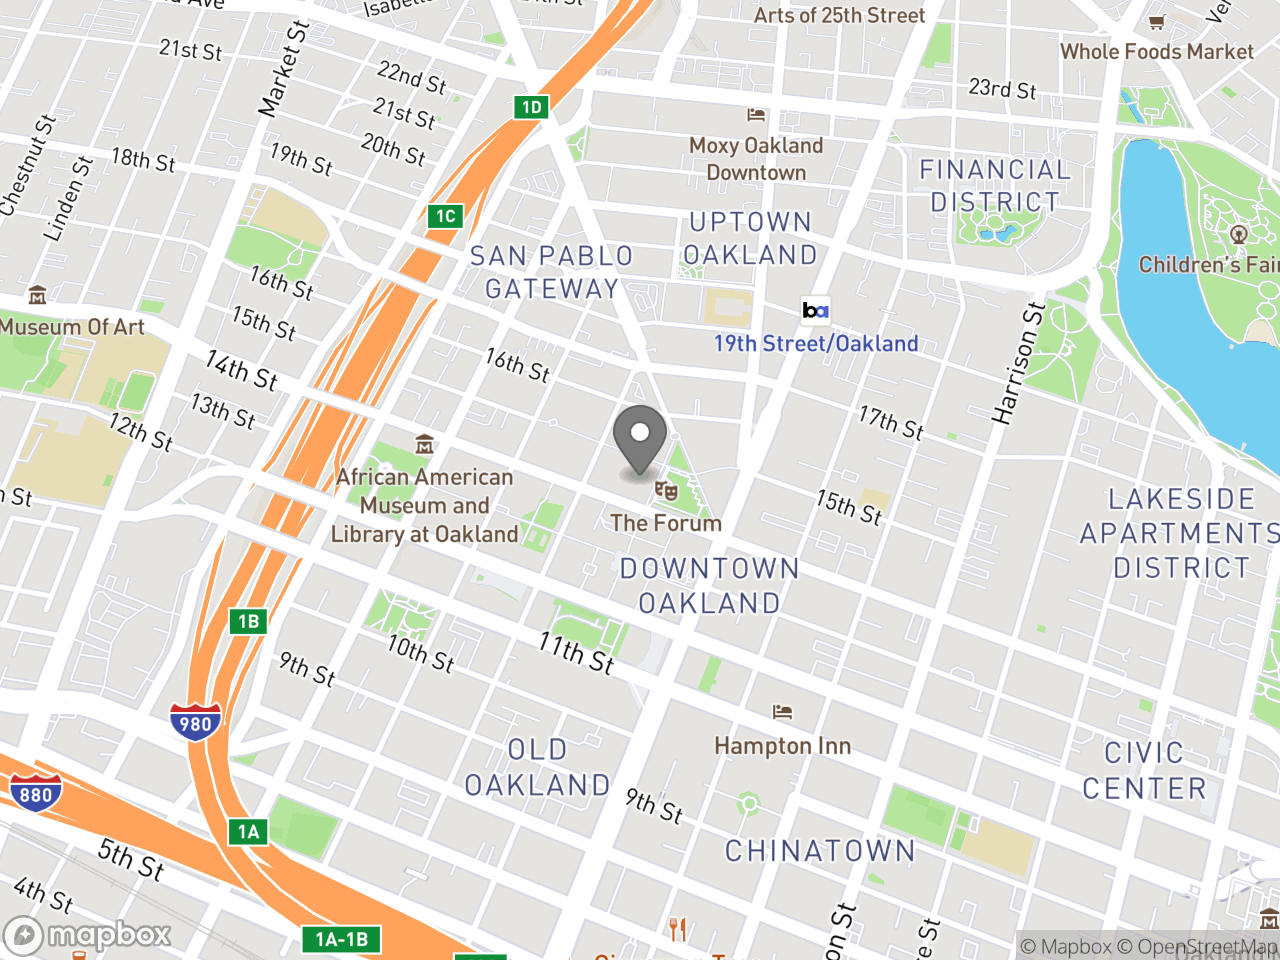 Map image for Sugar Sweetened Beverage Community Advisory Board Meeting January 13, 2020, located at 1 Frank H. Ogawa Plaza in Oakland, CA 94612